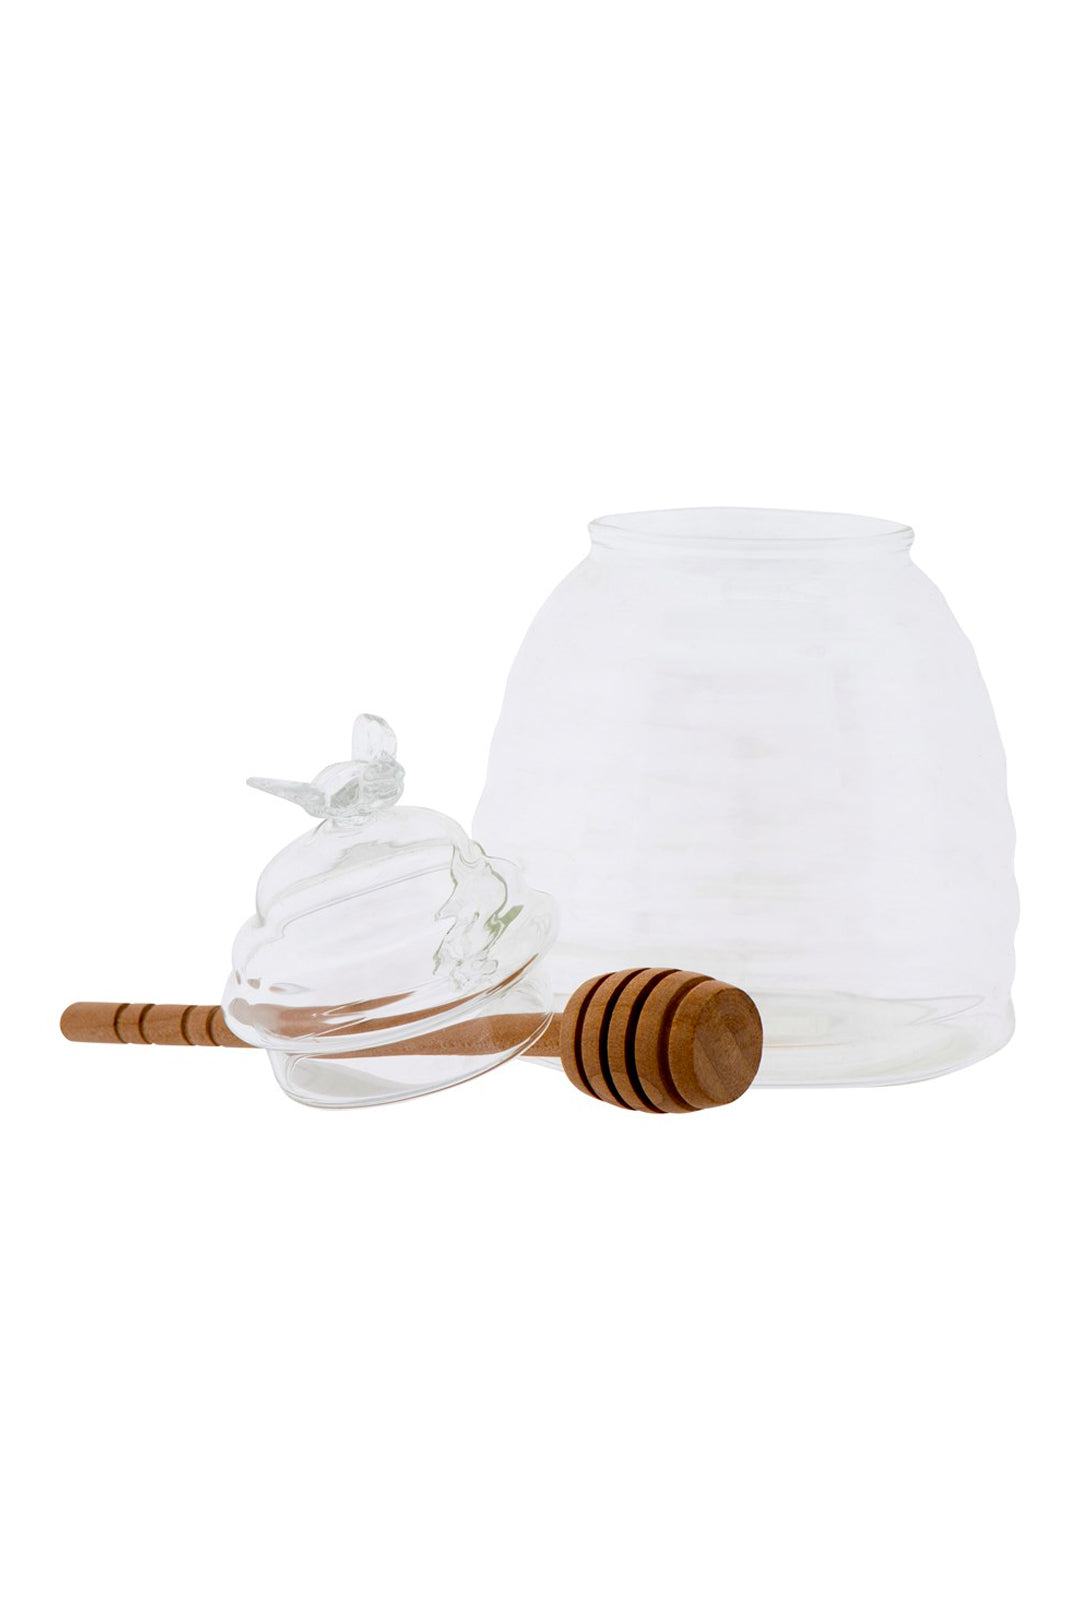 Glass Honey Jar w/Wood Honey Dipper